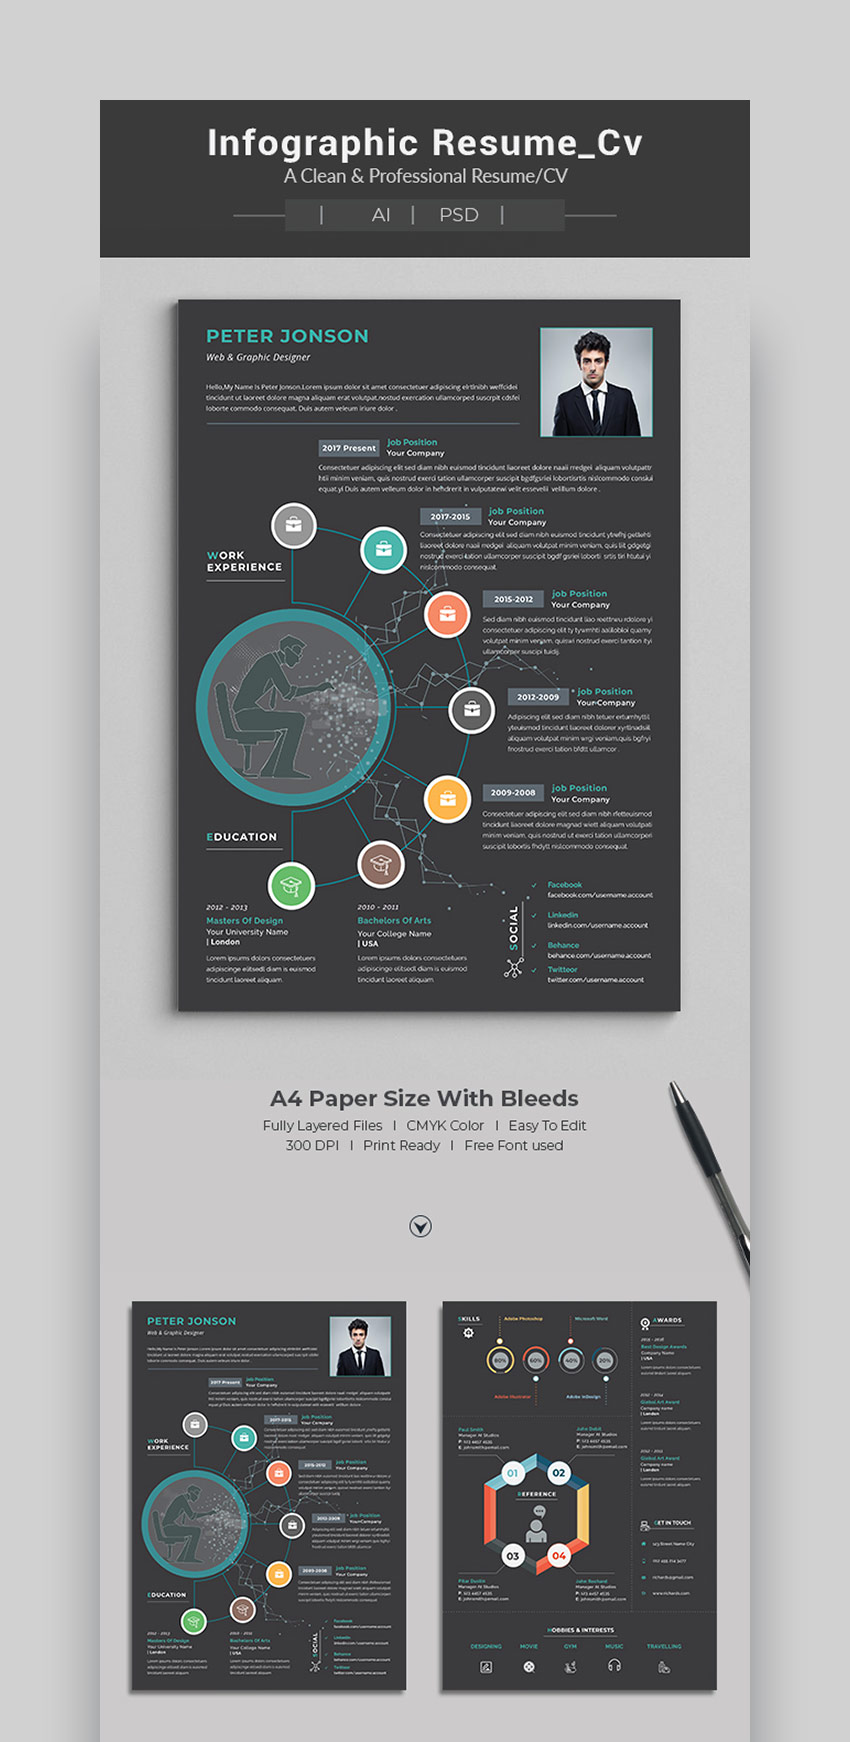 best infographic resume cv templates creative examples for sample housekeeping position Resume Creative Infographic Resume